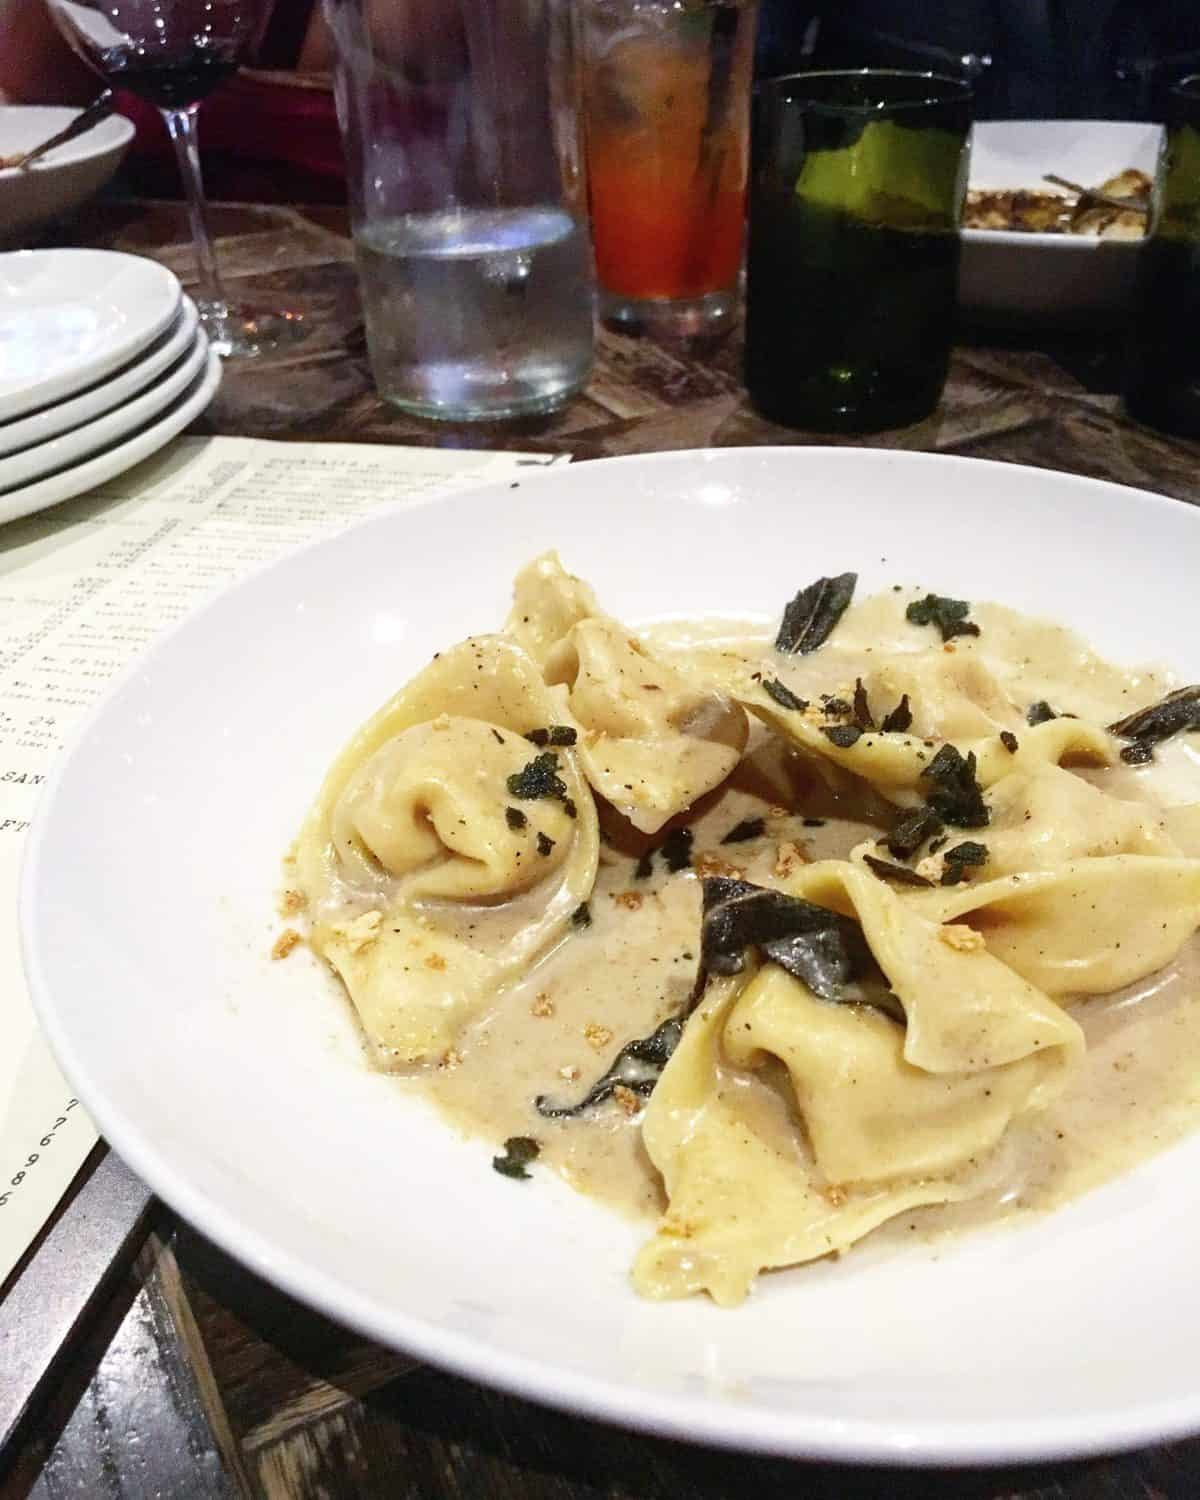 Roasted carrot tortellini in a brown butter sage sauce